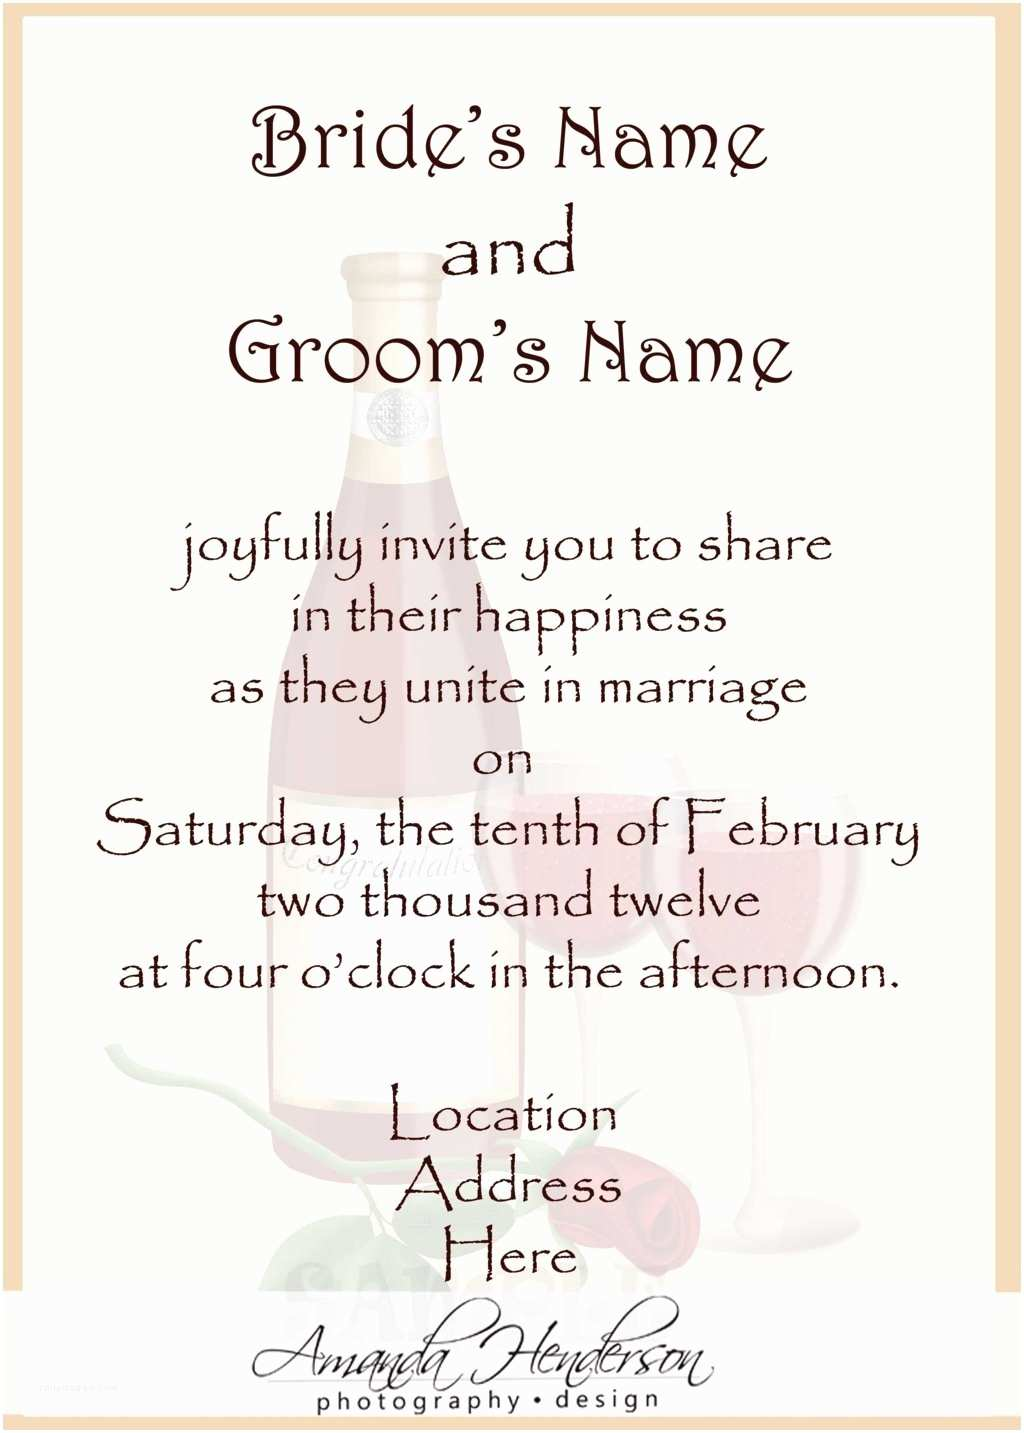 Wedding Invitation Wording Indian Bride and Groom Wedding Structurewedding Structure